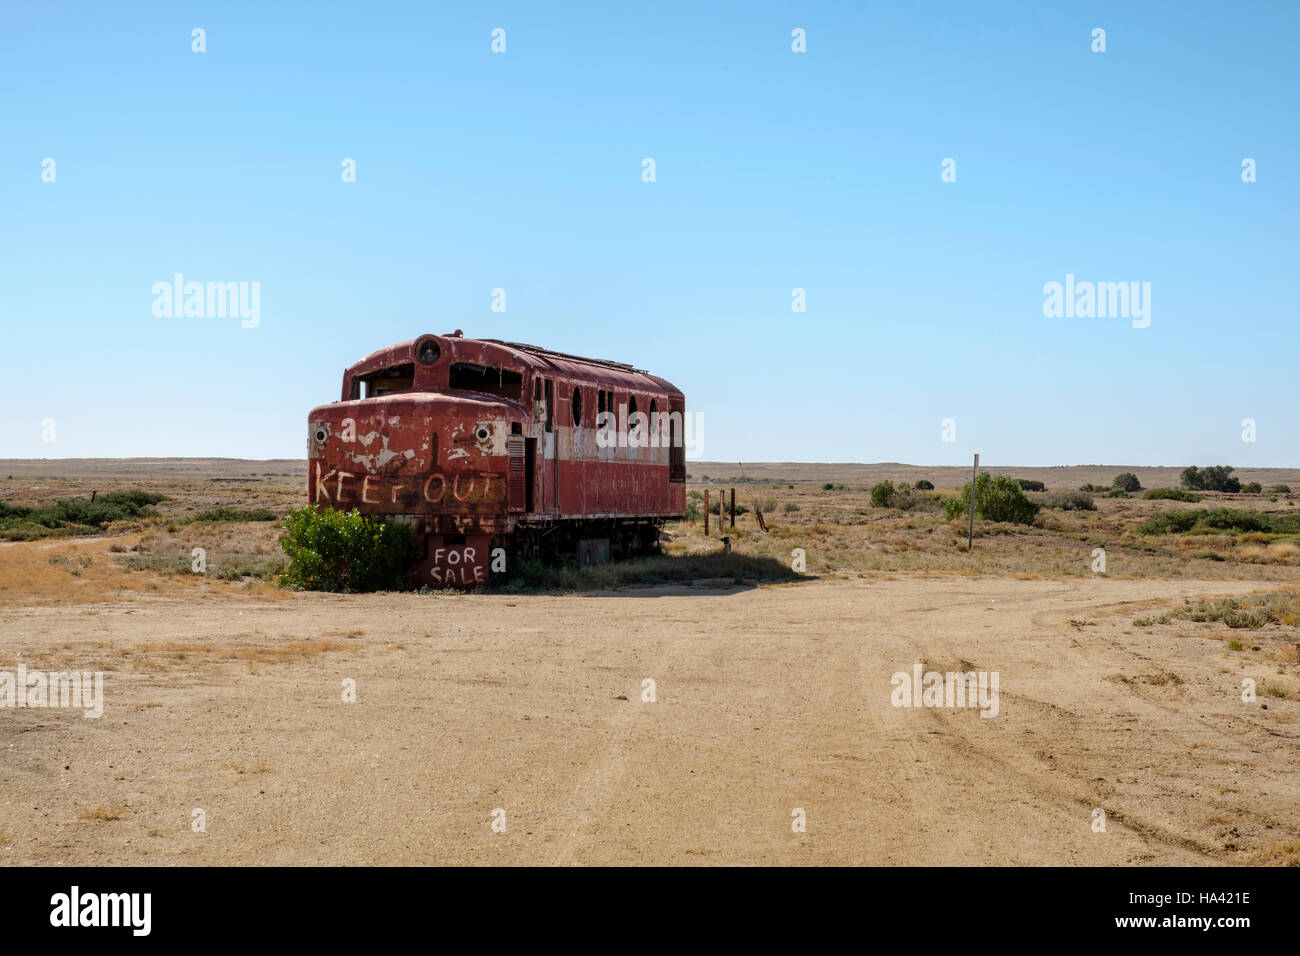 An old diesel locomotive stands abandoned at Marree in the Australian Outback - Stock Image